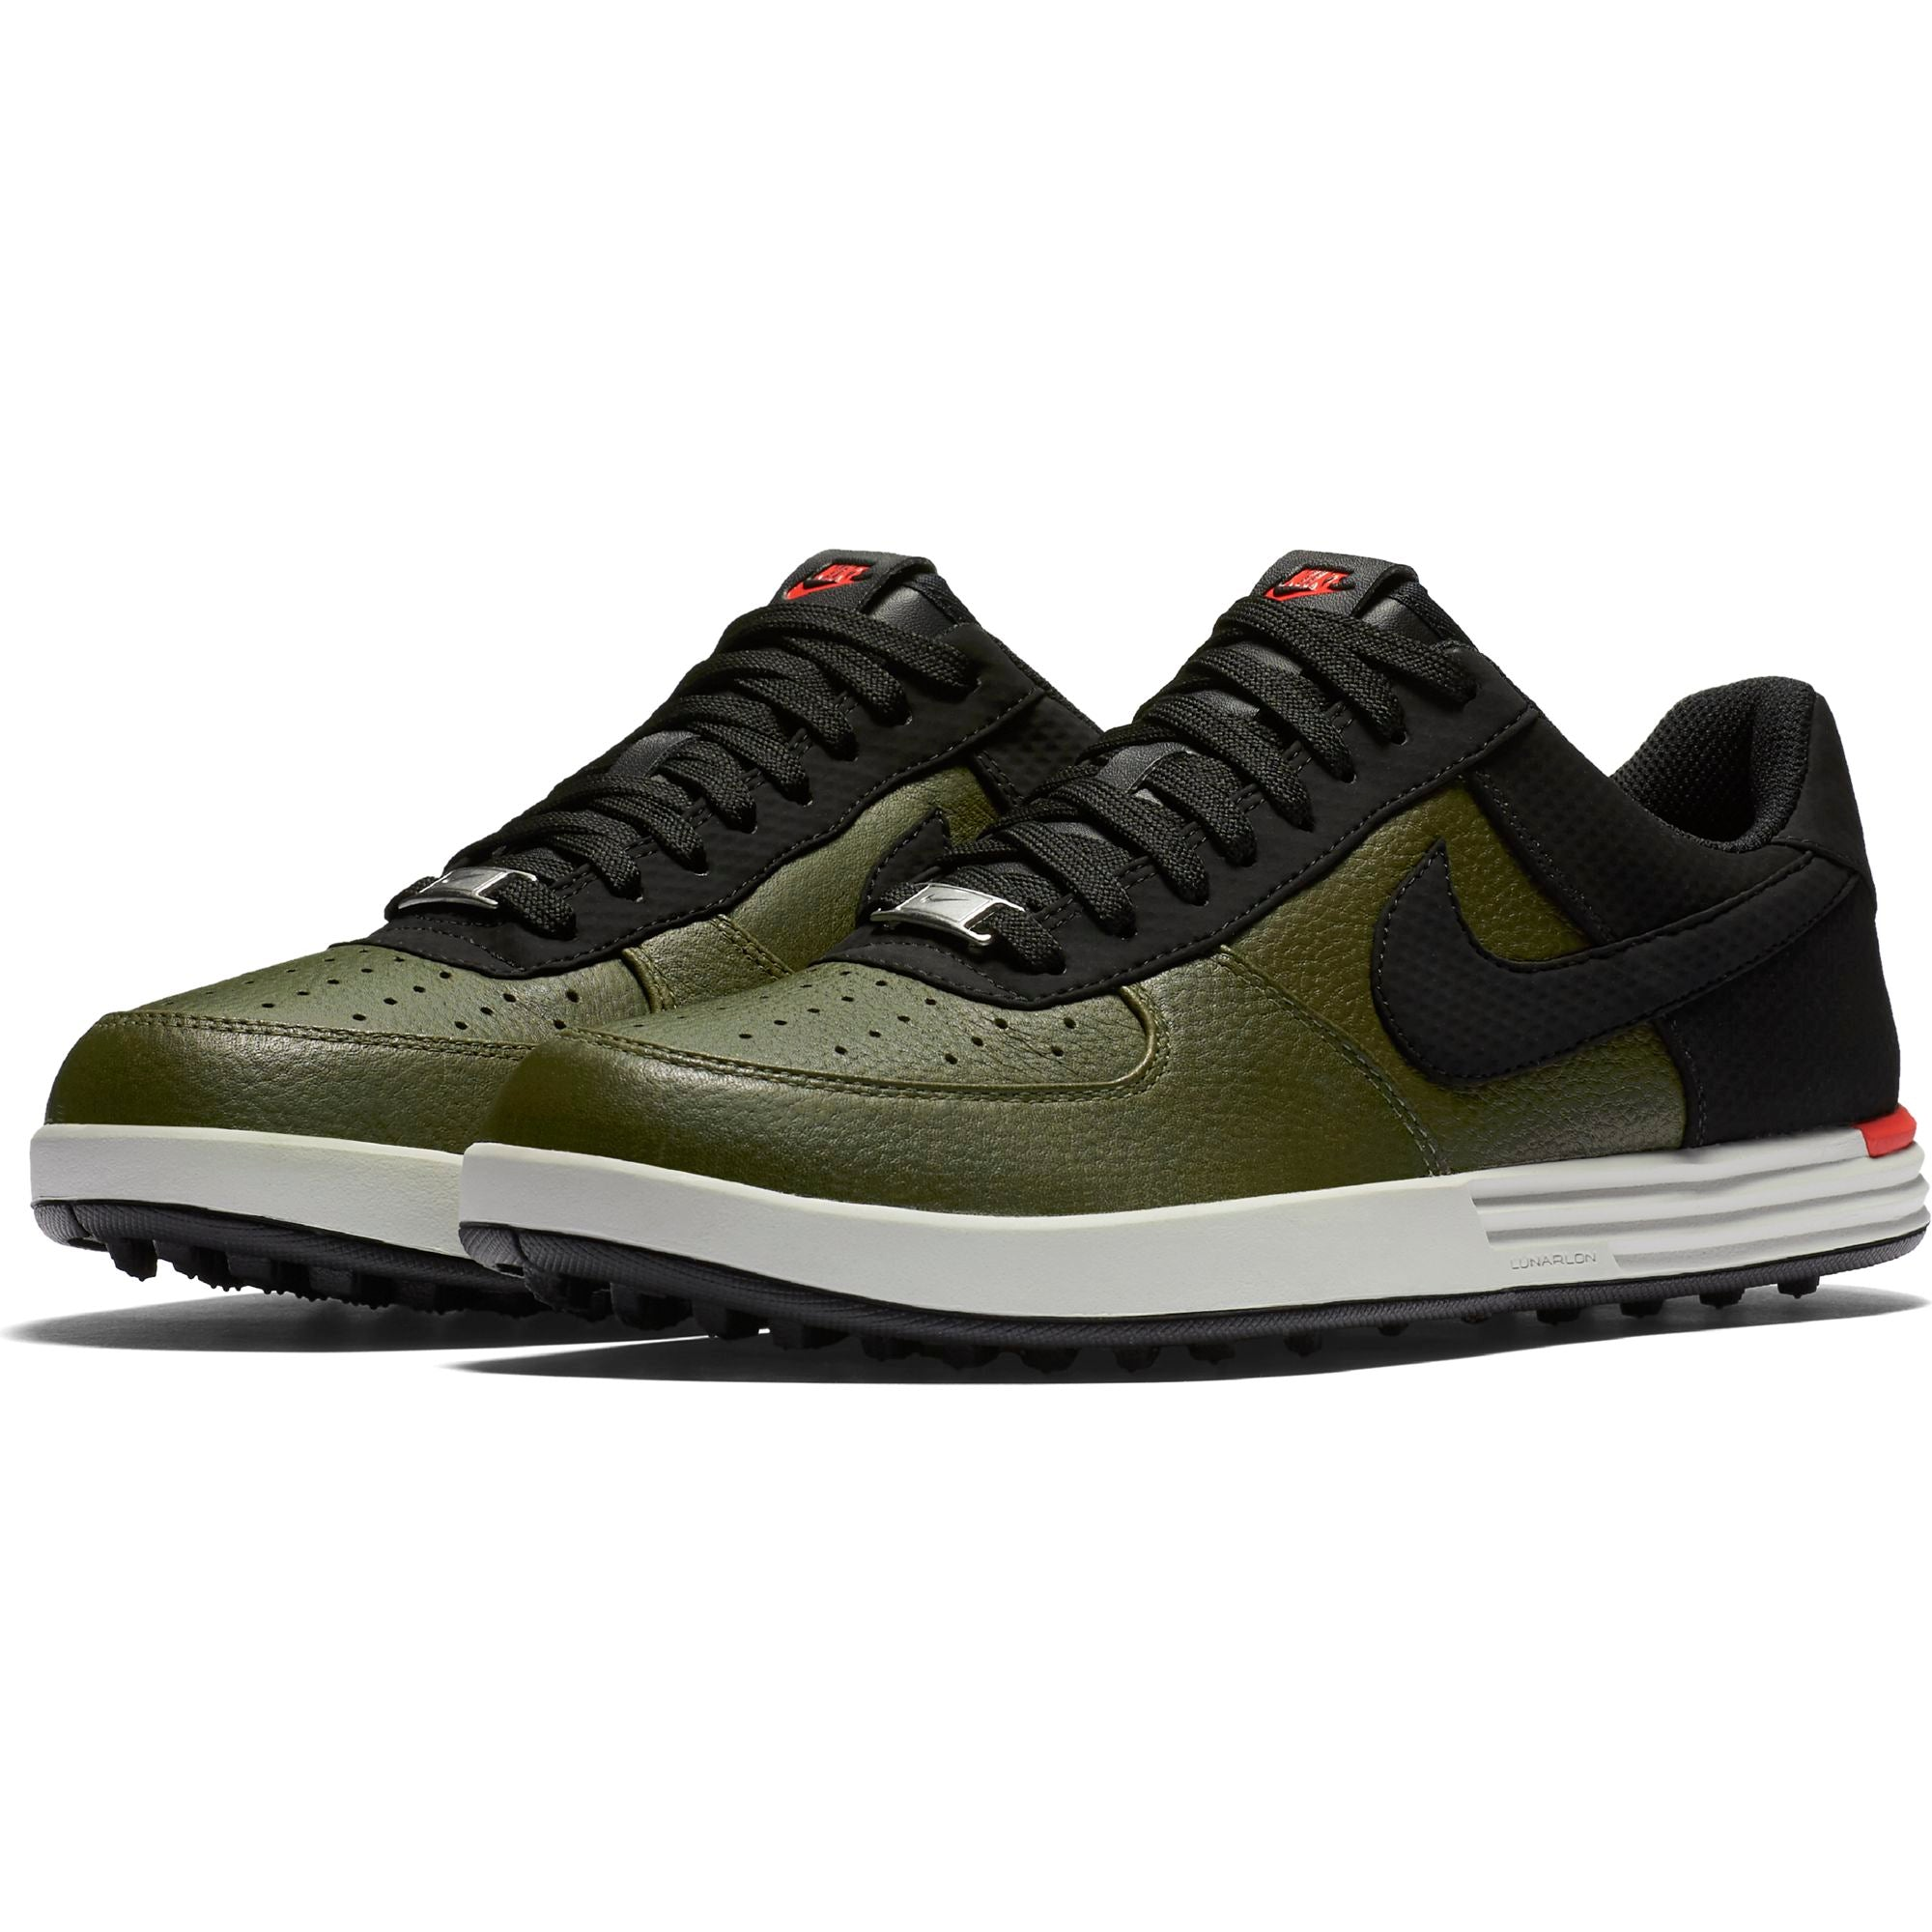 the latest db474 65586 Men s - NIKE LUNAR FORCE 1 G - Cargo Khaki Black-Max Orange-Light Bone – Just  Golf Stuff (US)